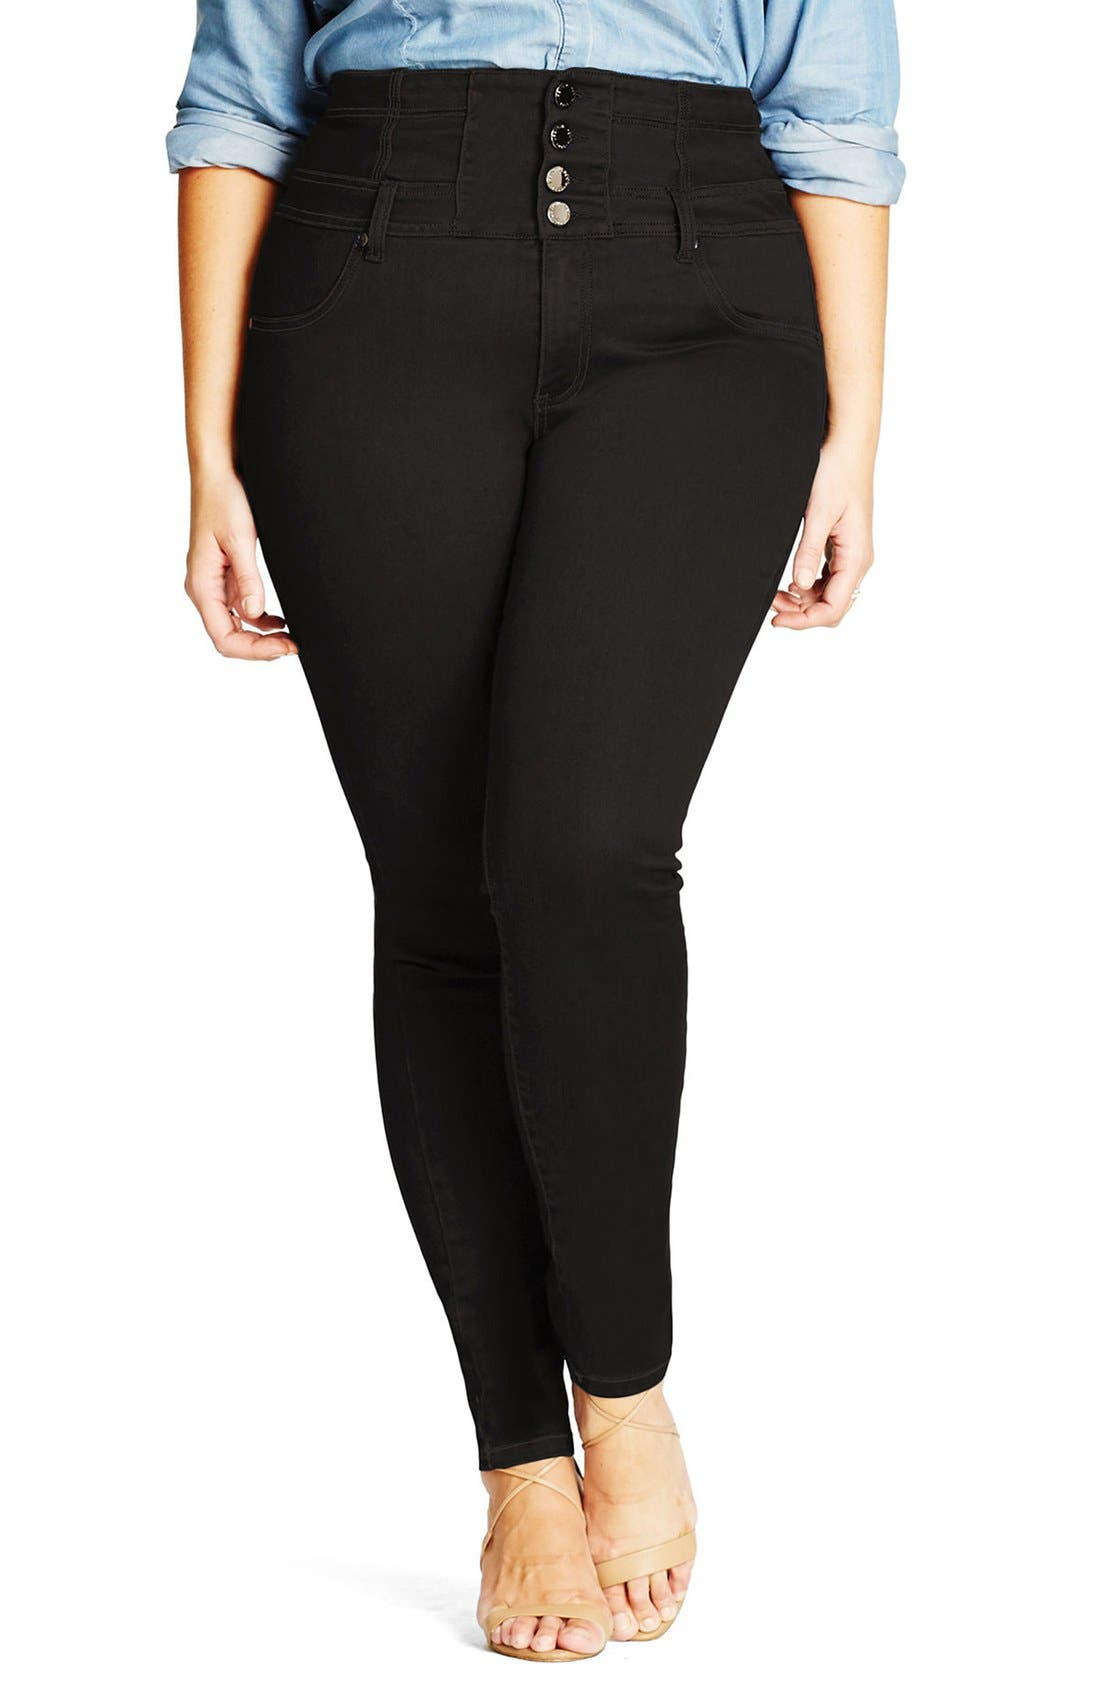 Alternate Image 1 Selected - City Chic 'Harley' Corset Waist Skinny Jeans (Plus Size)